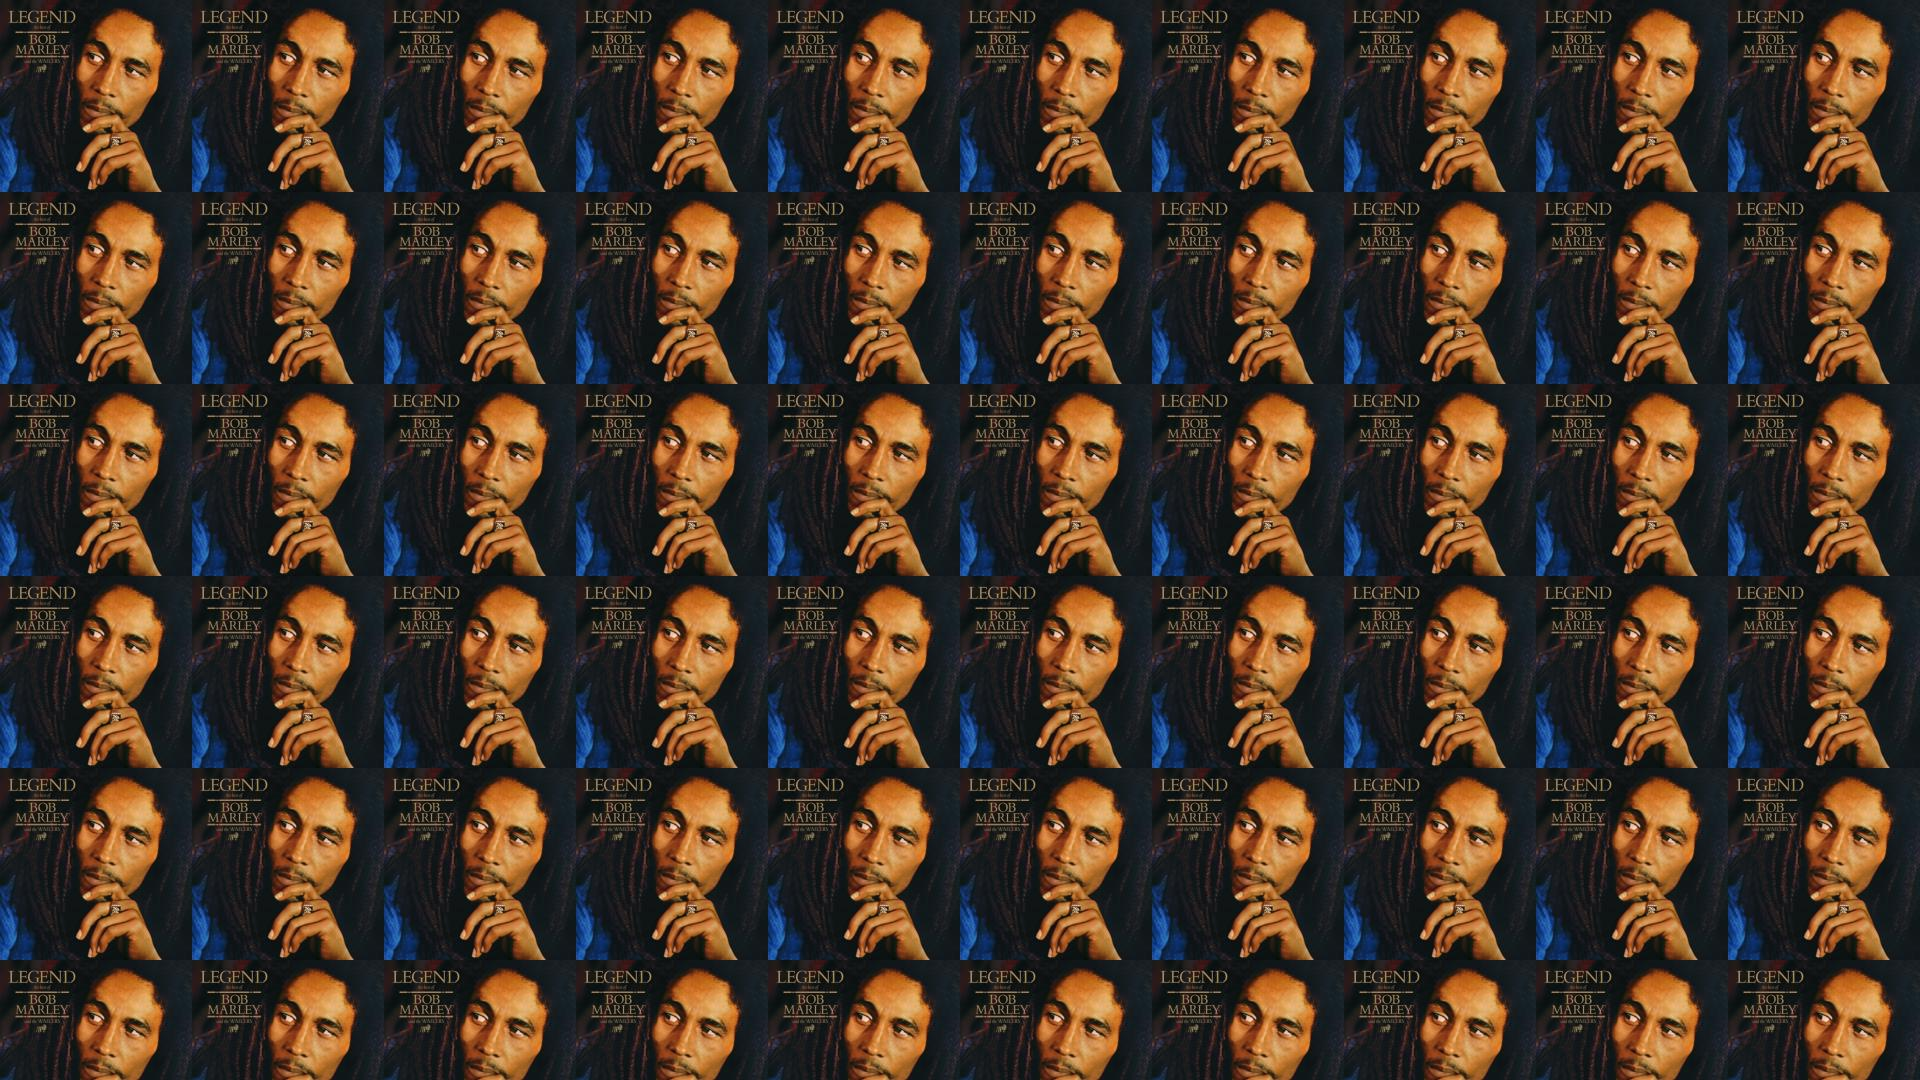 Bob marley legend wallpaper tiled desktop wallpaper bob marley the legend download tweak this altavistaventures